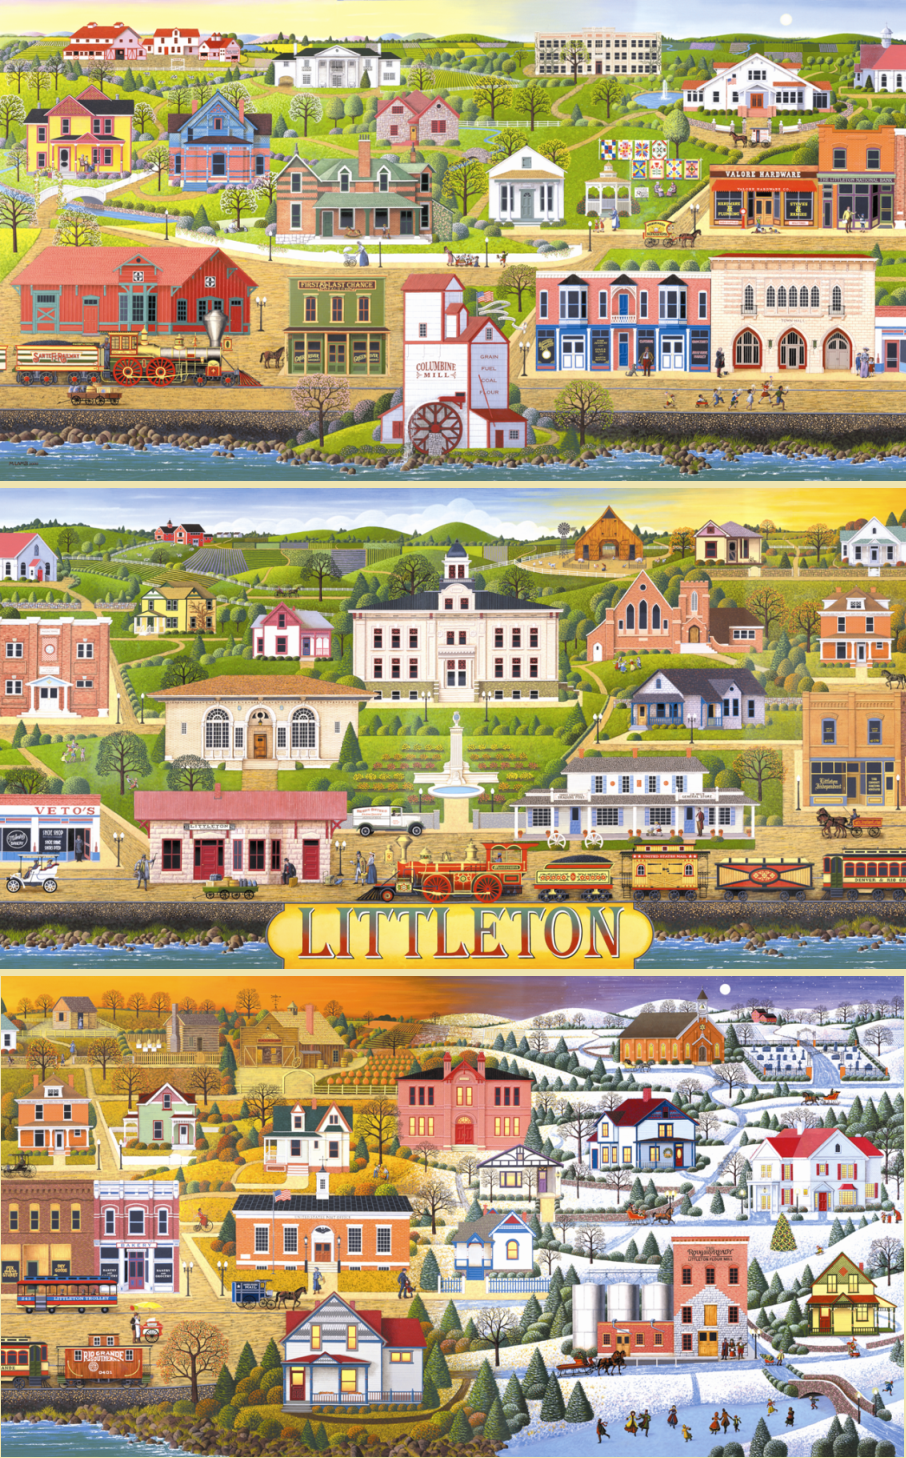 Littleton Mural - Prints Available